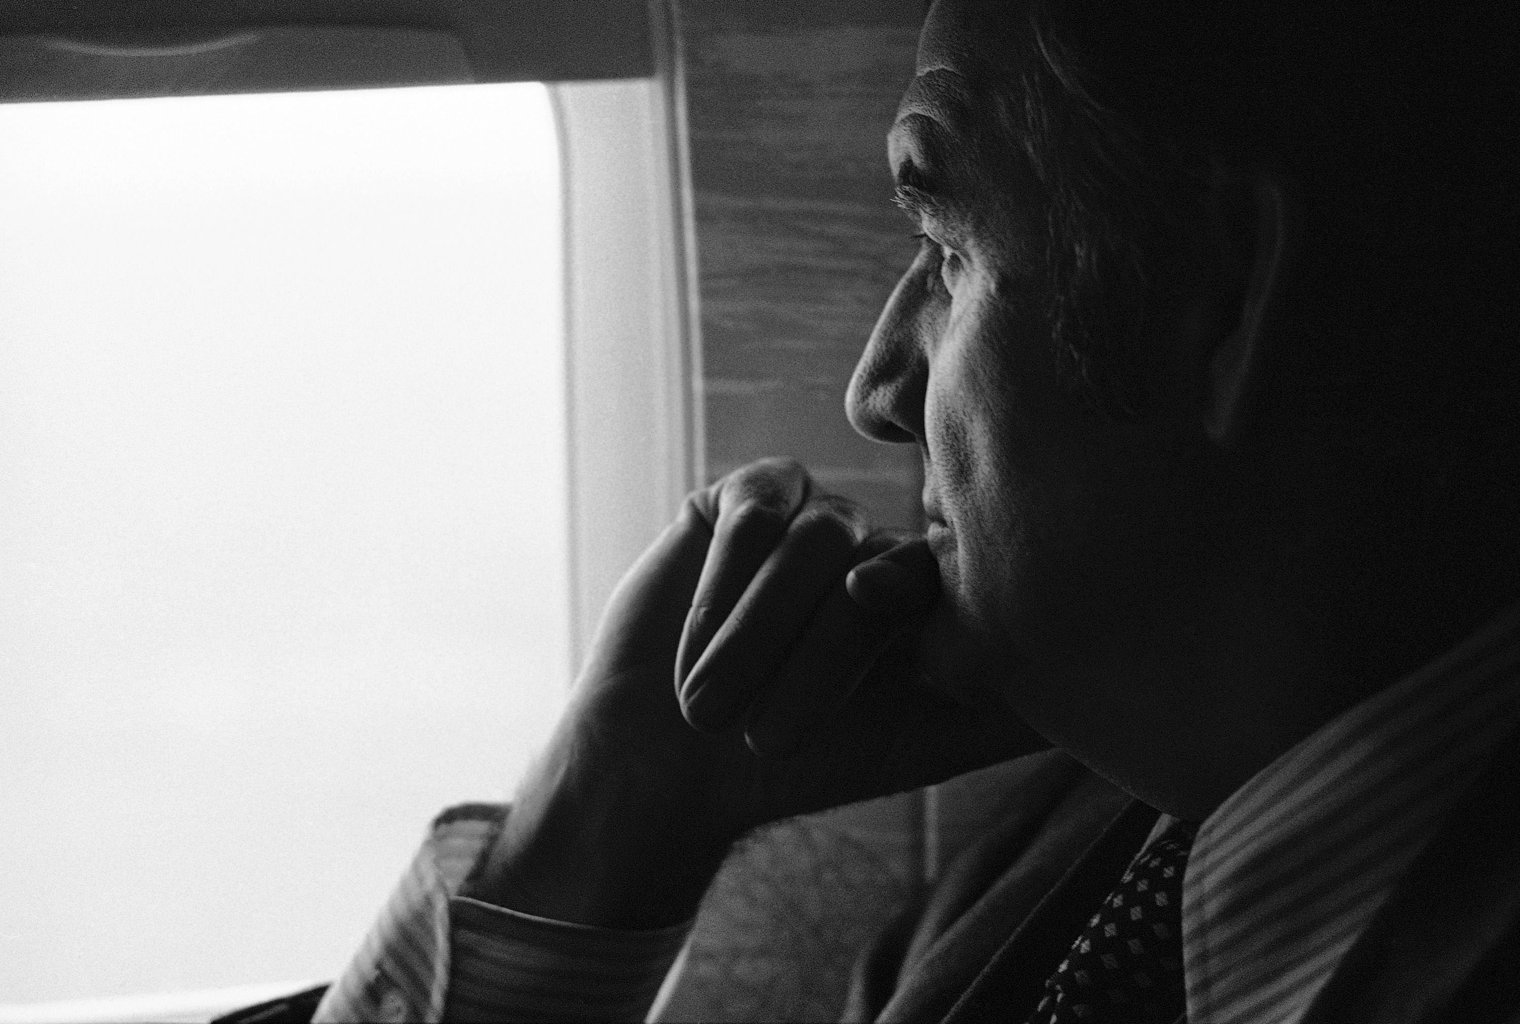 In this March 25, 1974 file photo, U.S. Senator George McGovern,looks out an airplane window on a flight to Pierre, S.D., to begin a four-day campaign swing. A family spokesman says, McGovern, the Democrat who lost to President Richard Nixon in 1972 in a historic landslide, has died at the age of 90. According to a spokesman, McGovern died Sunday, Oct. 21, 2012 at a hospice in Sioux Falls, surrounded by family and friends. (AP Photo, File)